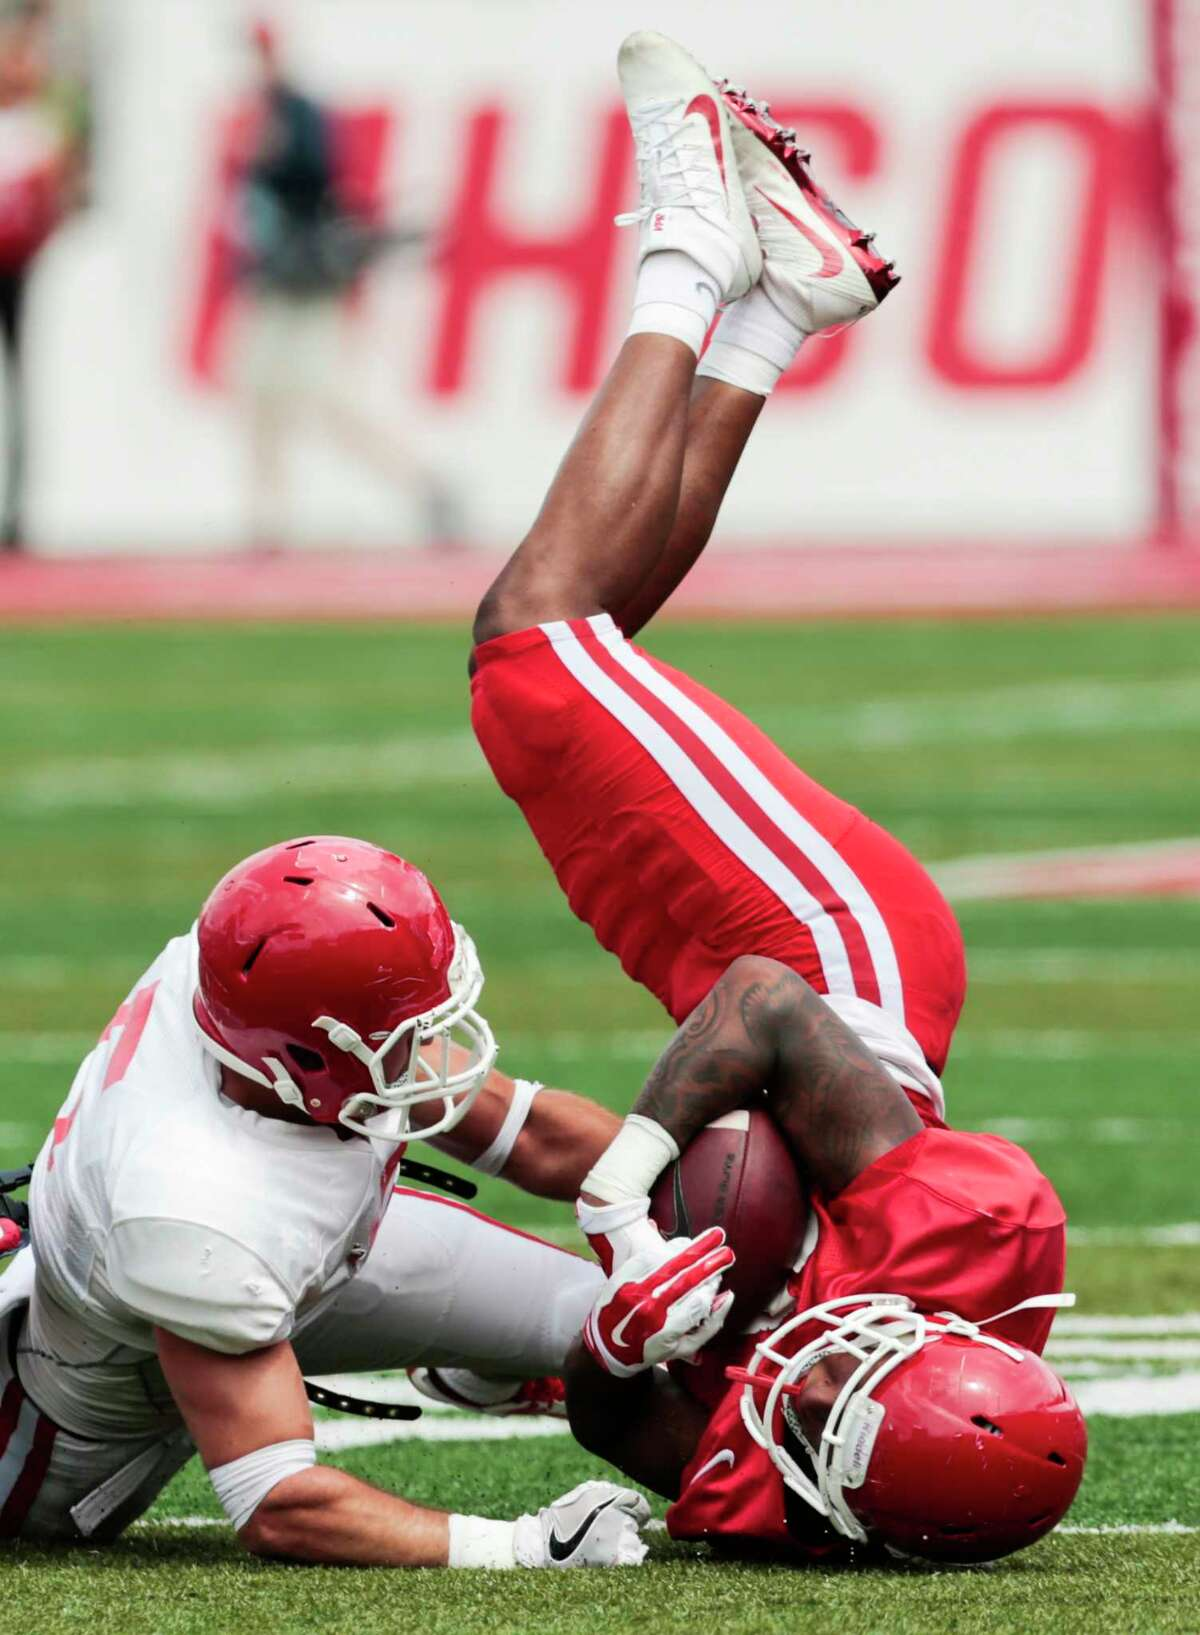 Houston safety Colln Wilder, left, brings down wide receiver Keith Corbin during the University of Houston Red-White Game at TDECU Stadium on Saturday, April 15, 2017, in Houston.